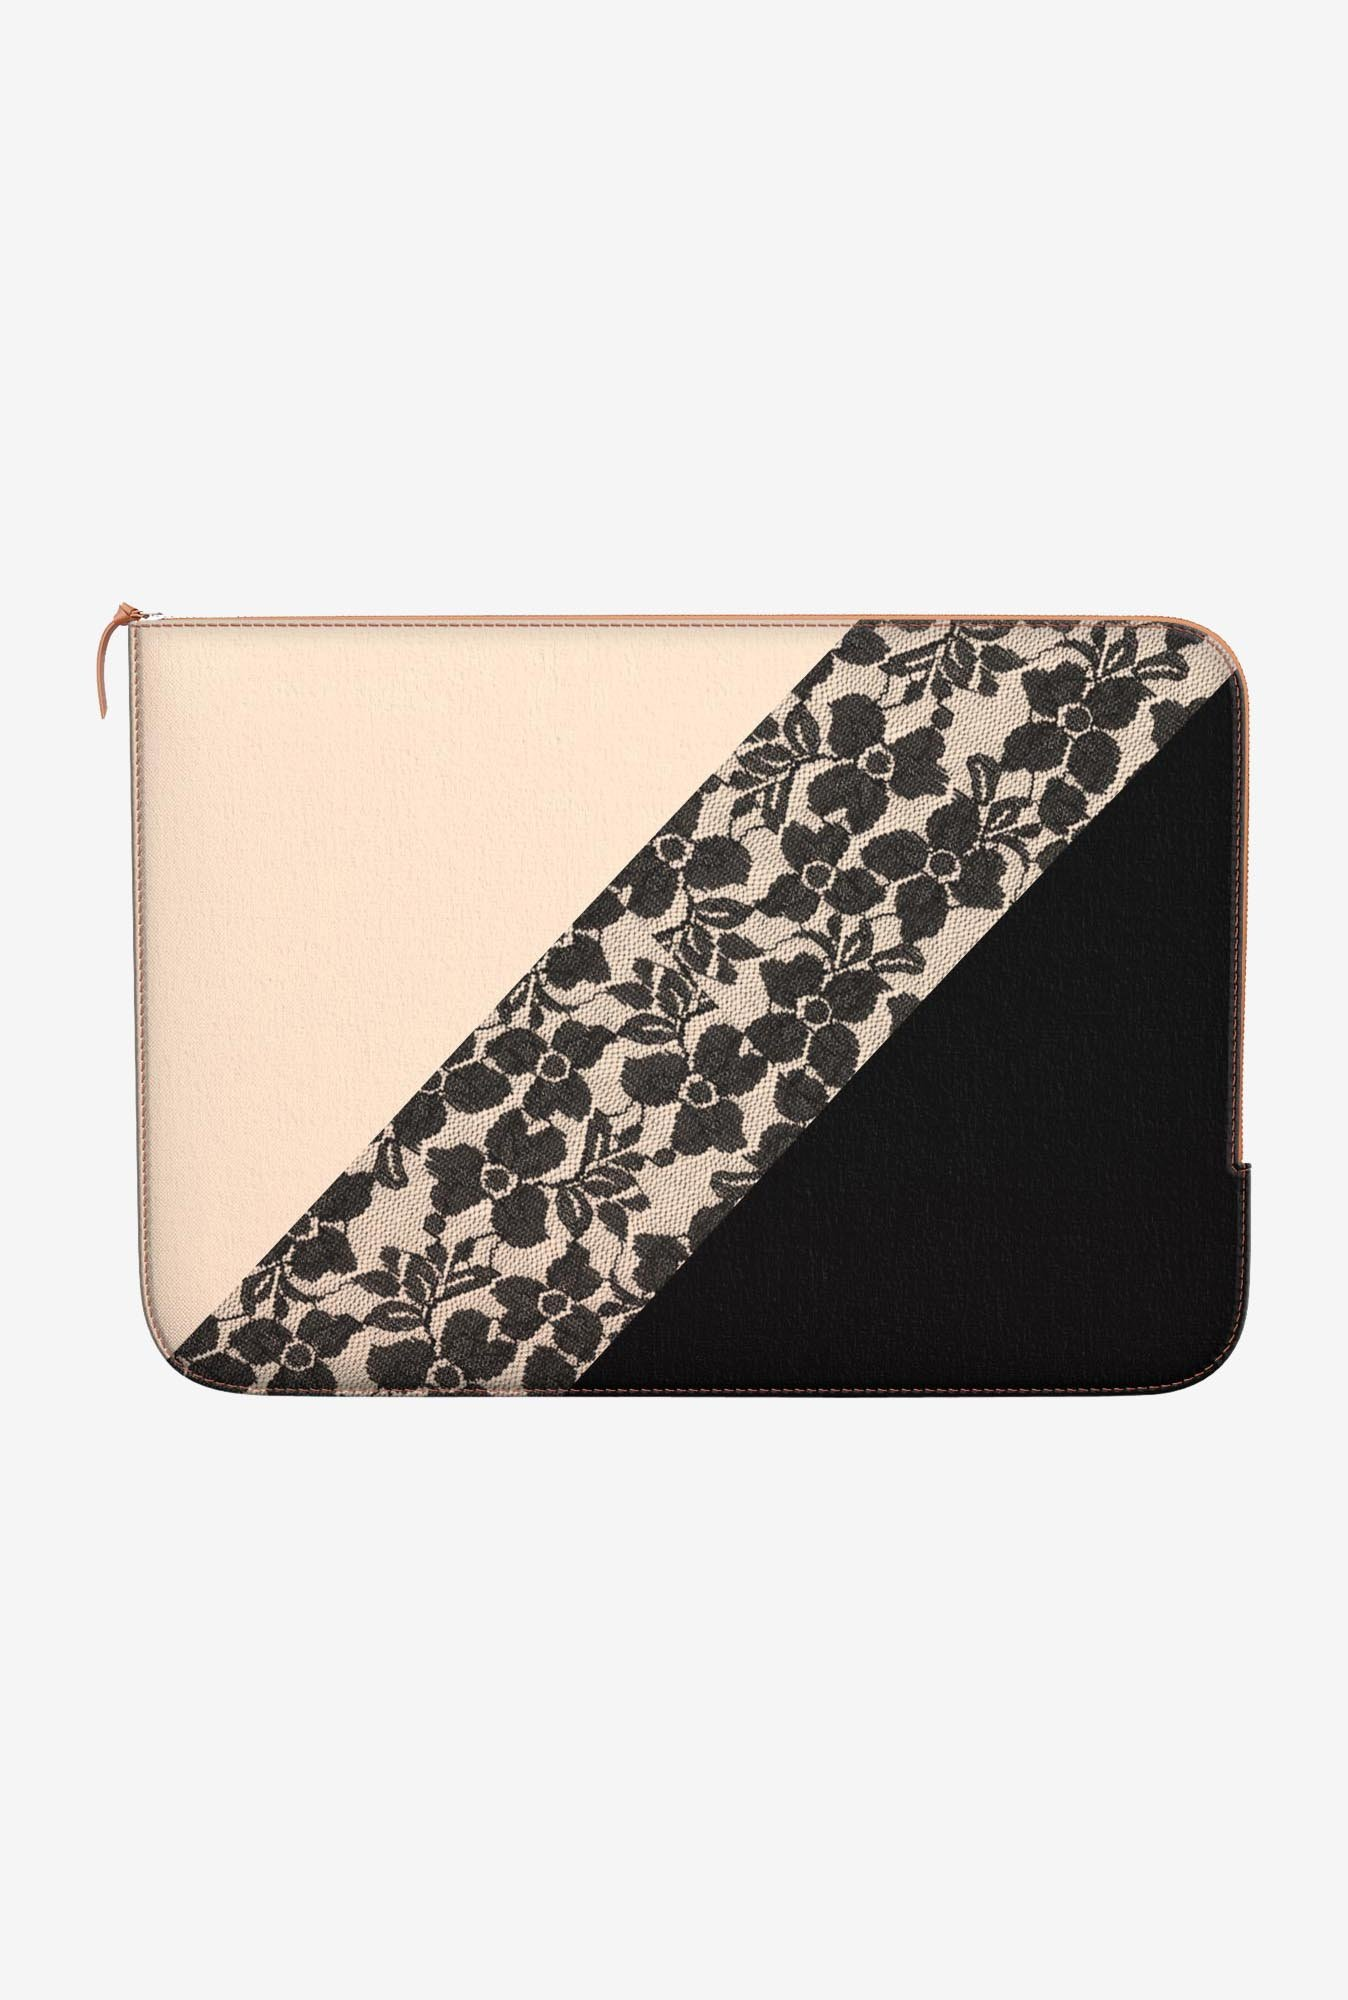 DailyObjects Lace Block MacBook 12 Zippered Sleeve